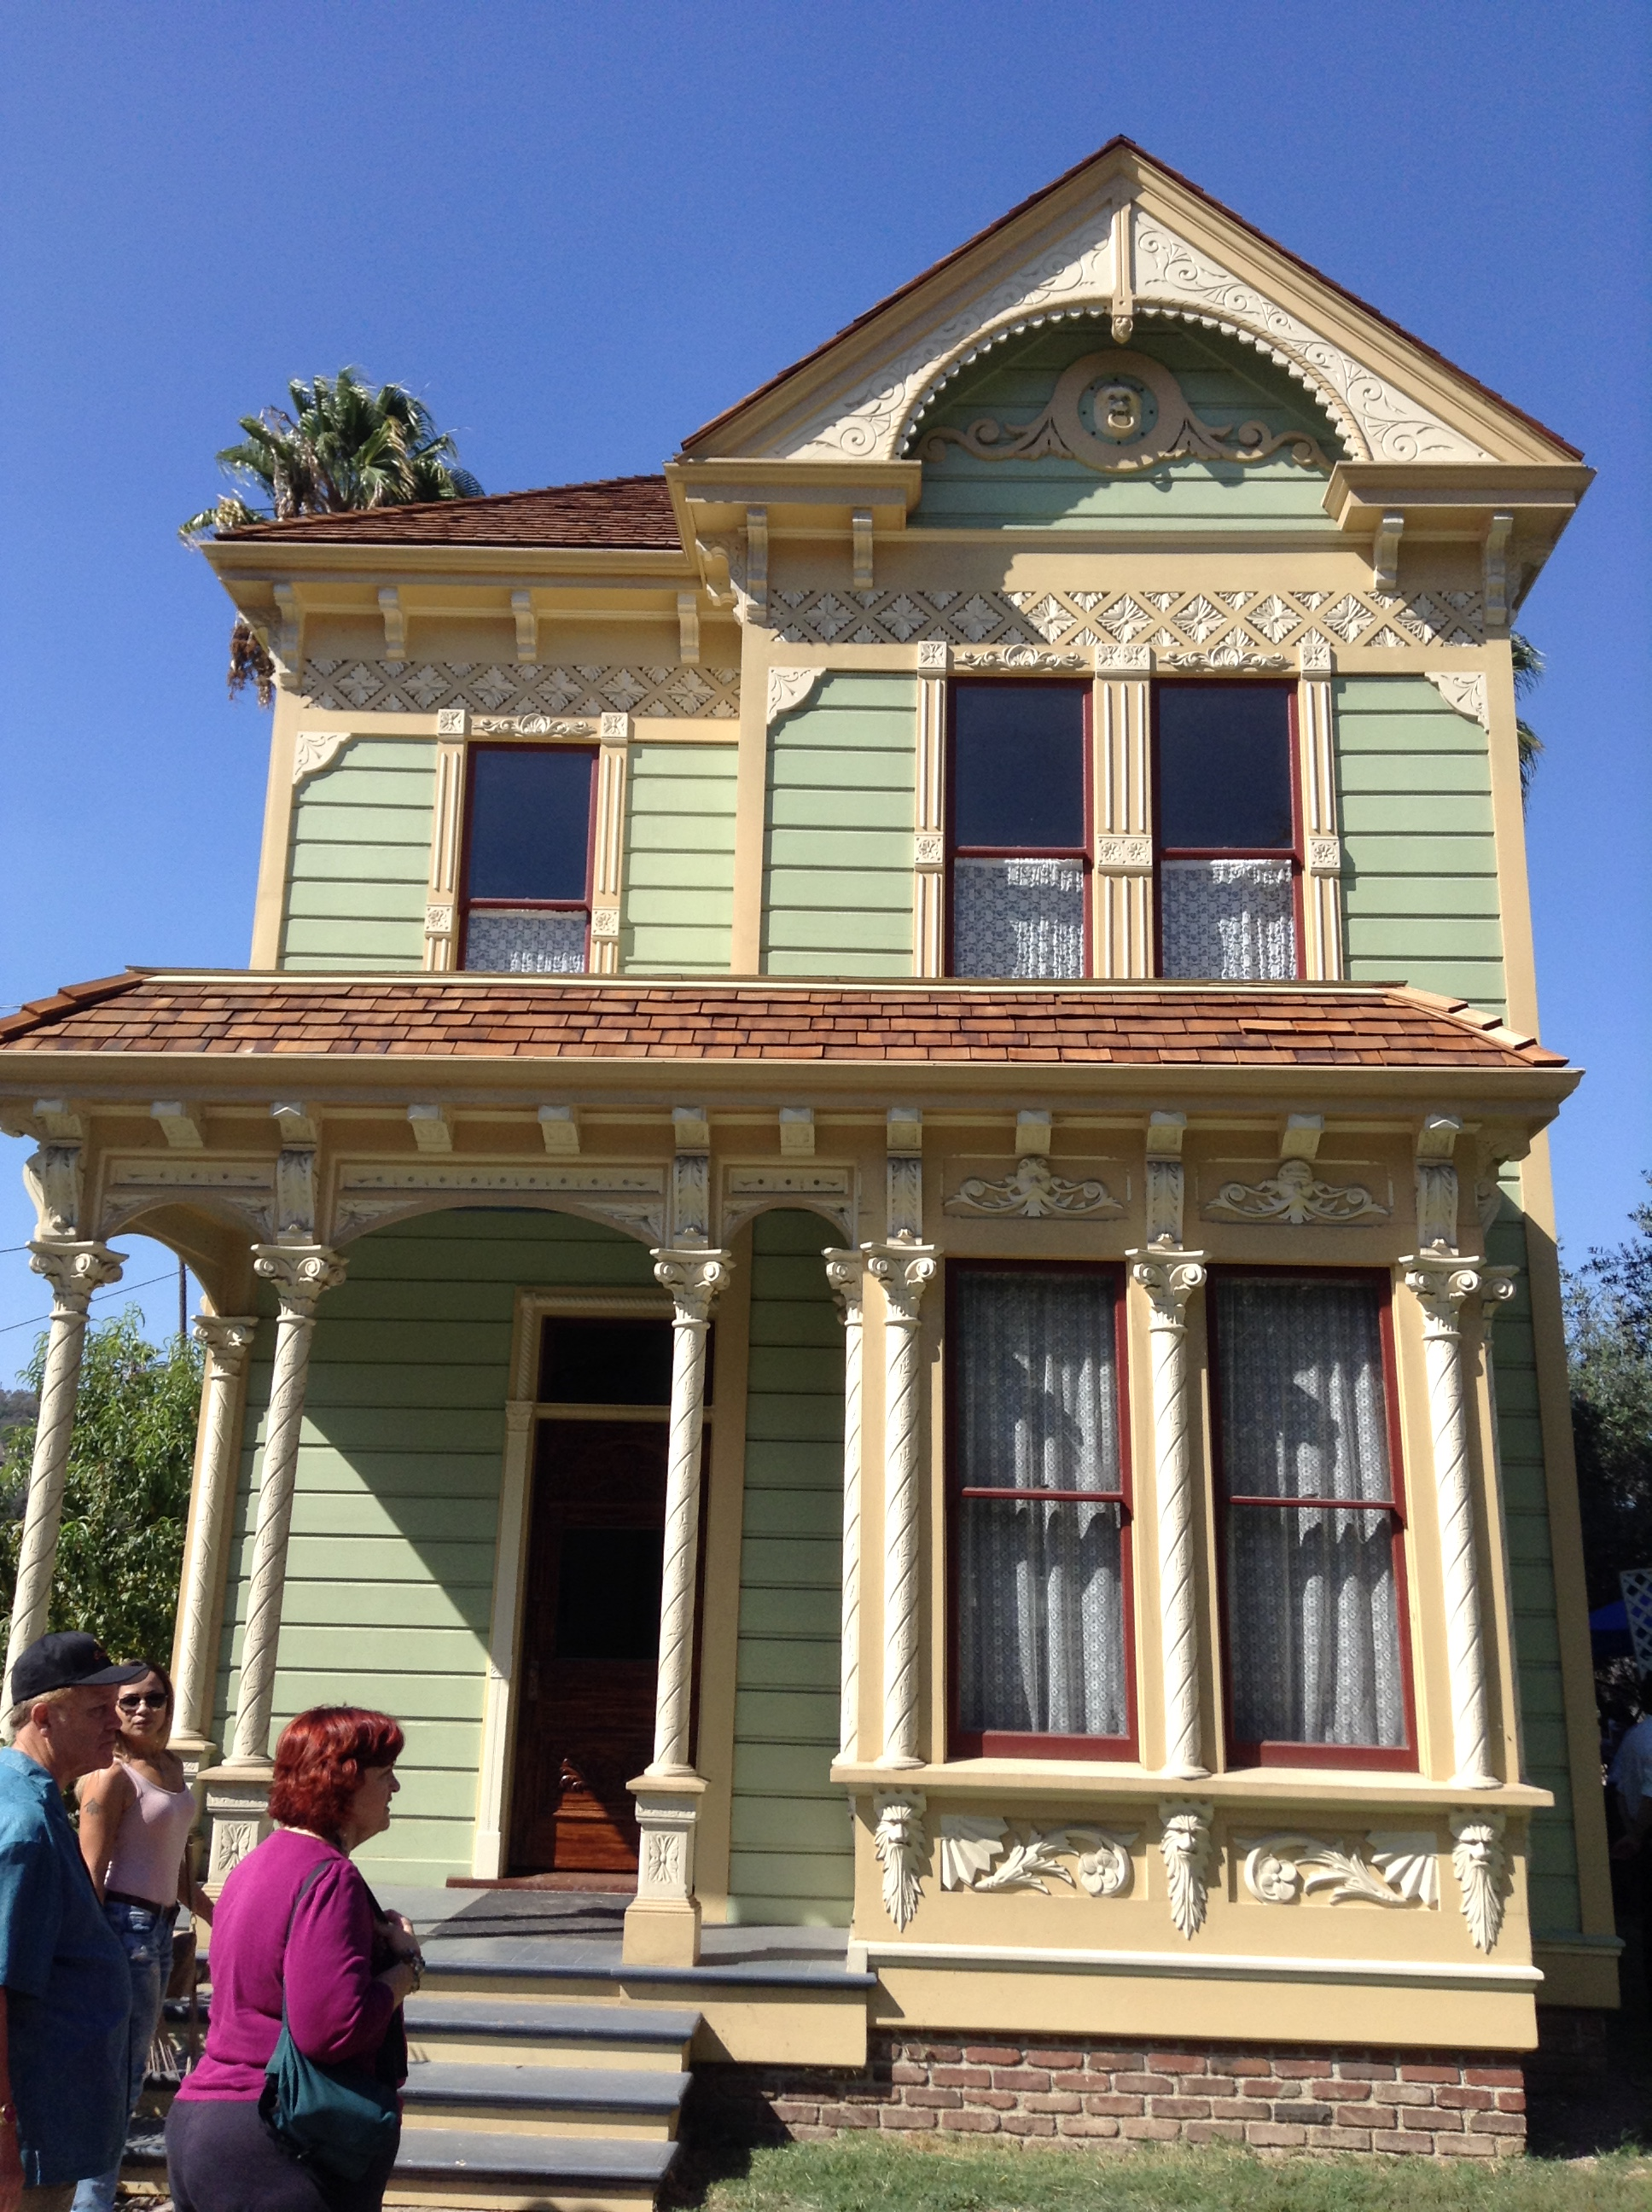 the john j ford house the exterior has been completely renovated but the interior needs major work when in the parlor if you squint your eyes to the